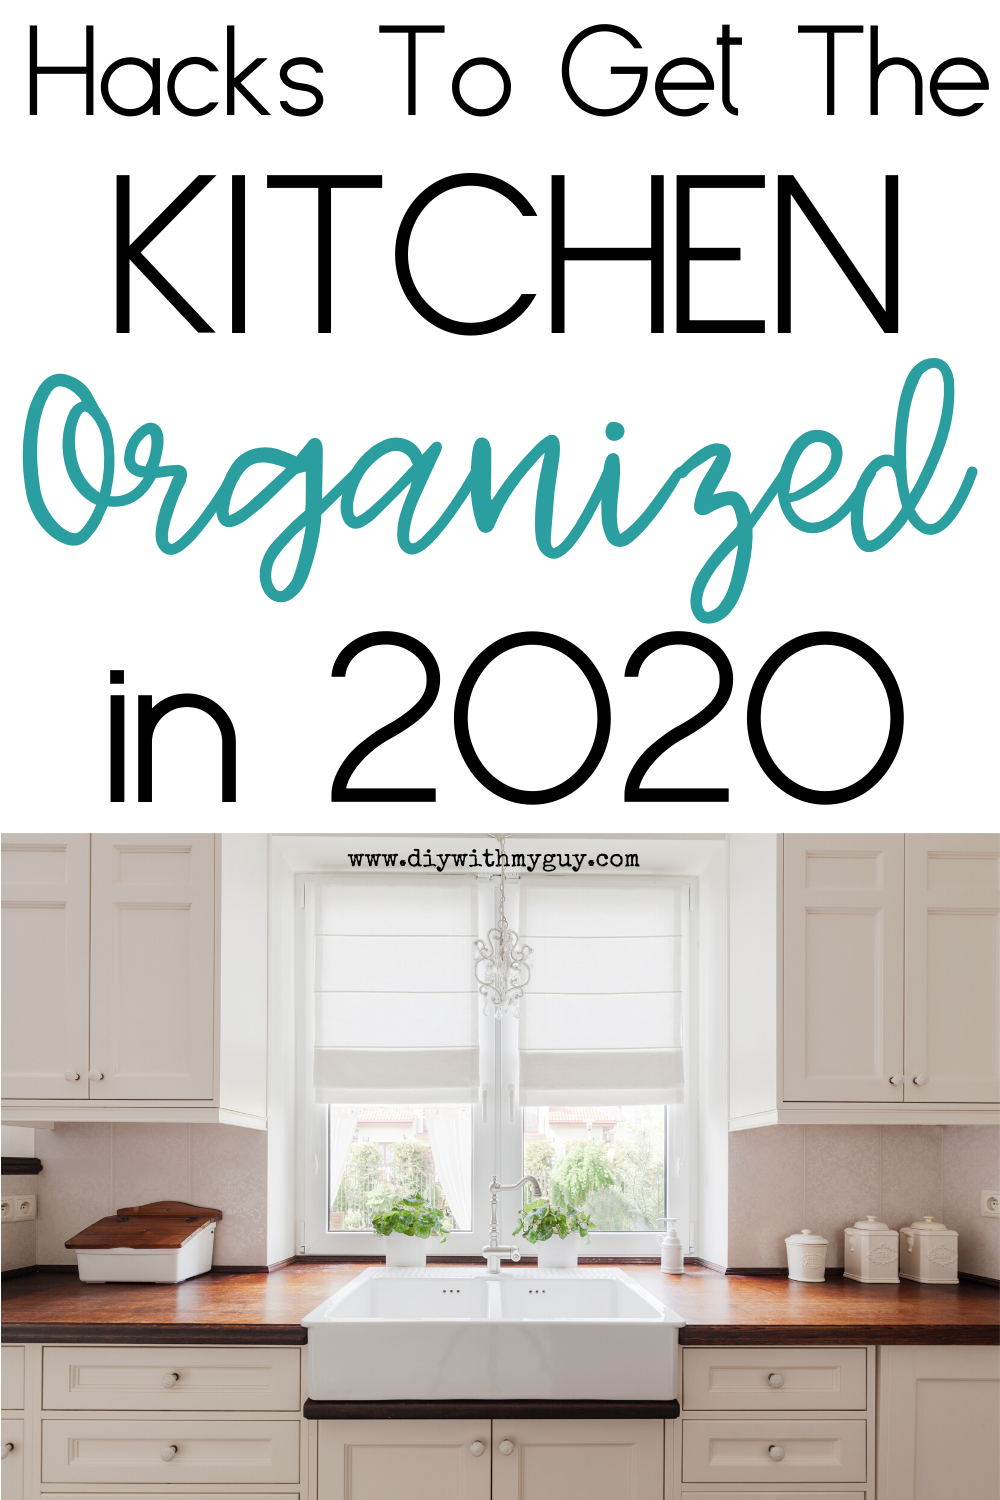 How To Keep Your Kitchen Clean And Organized Kitchen Organization Clean Kitchen Home Improvement Projects